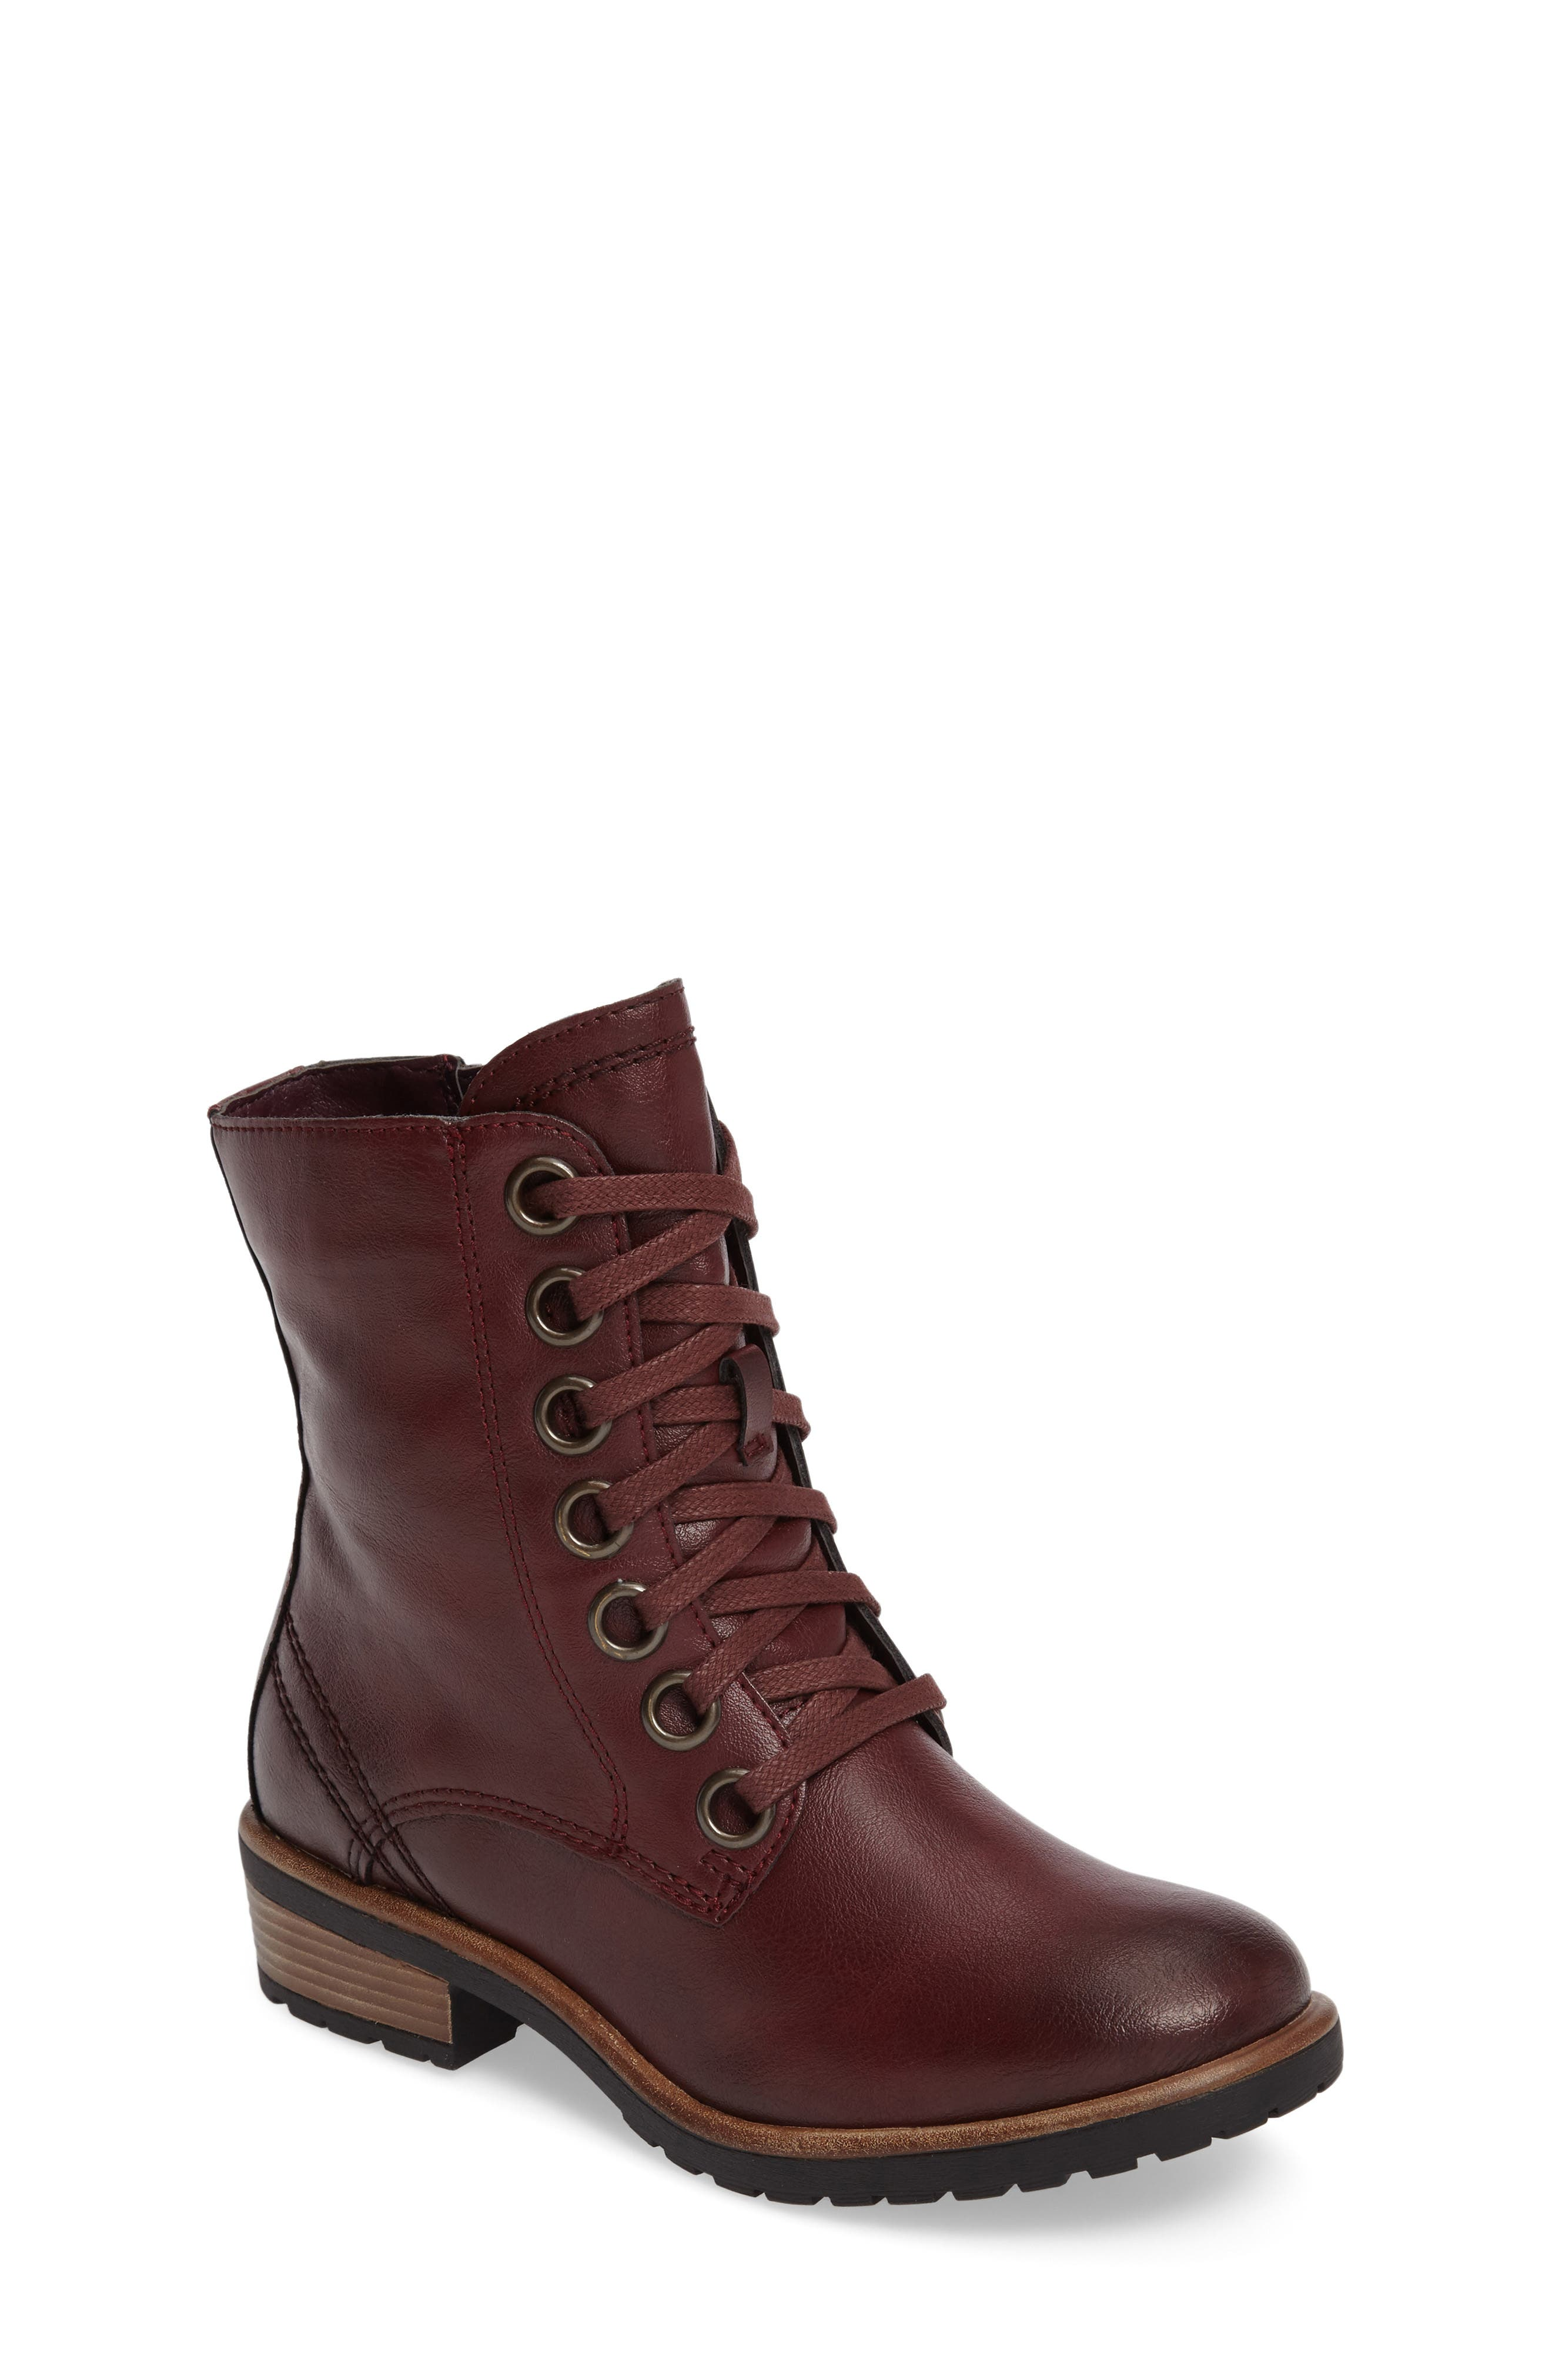 TUCKER + TATE Amsterdam Lace Up Boot